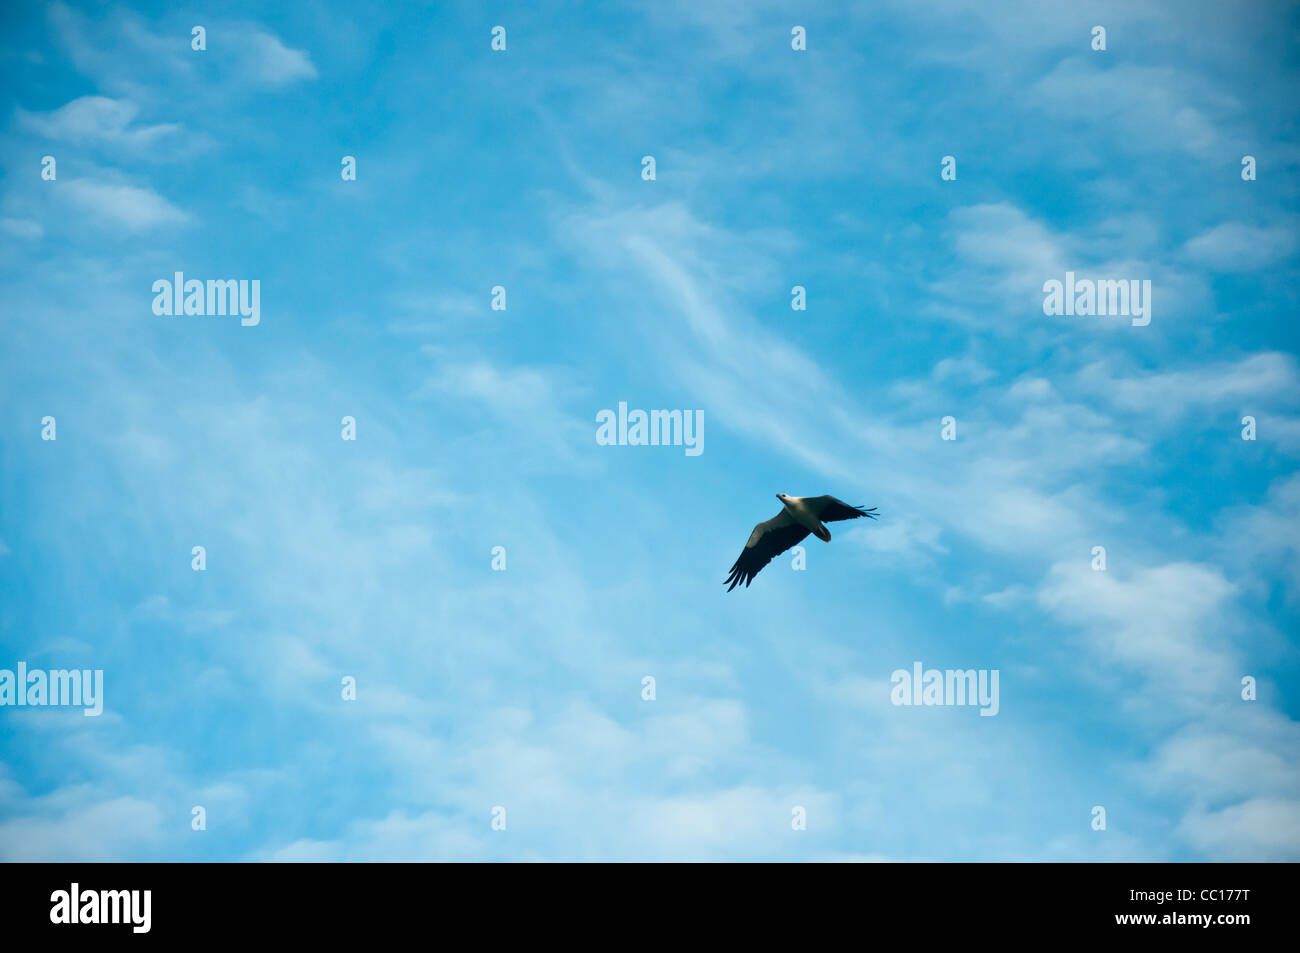 An eagle soars to the backdrop of a light blue sky - Stock Image